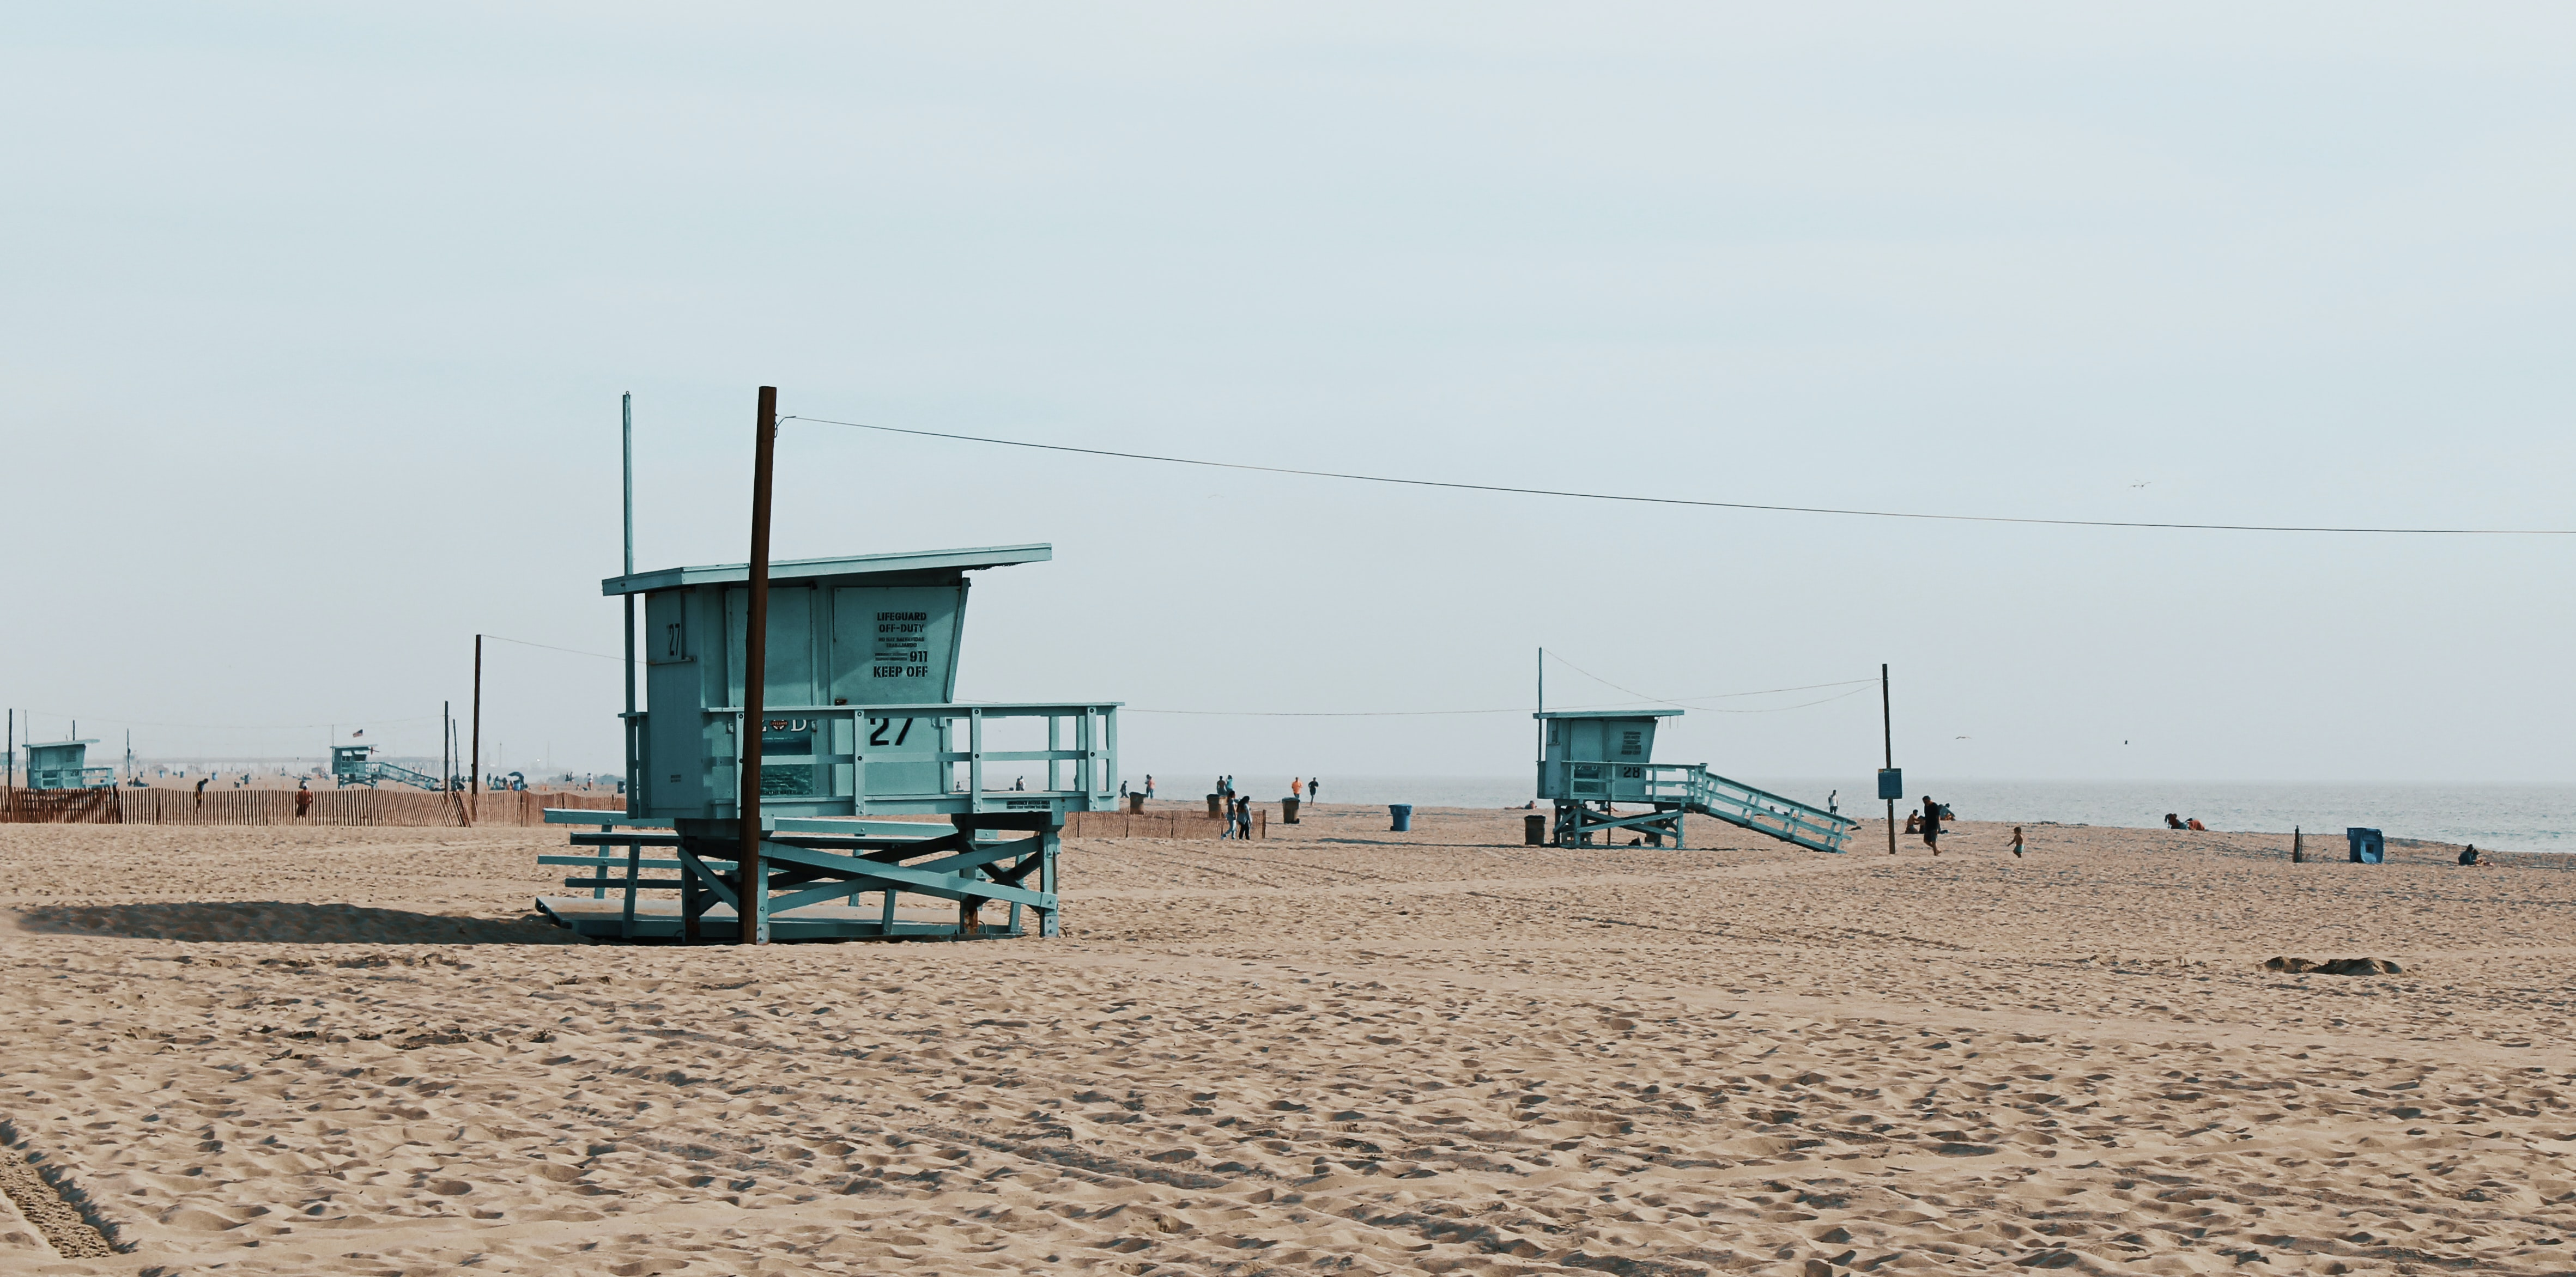 The Santa Monica beach with sand and turquoise lifeguard stands